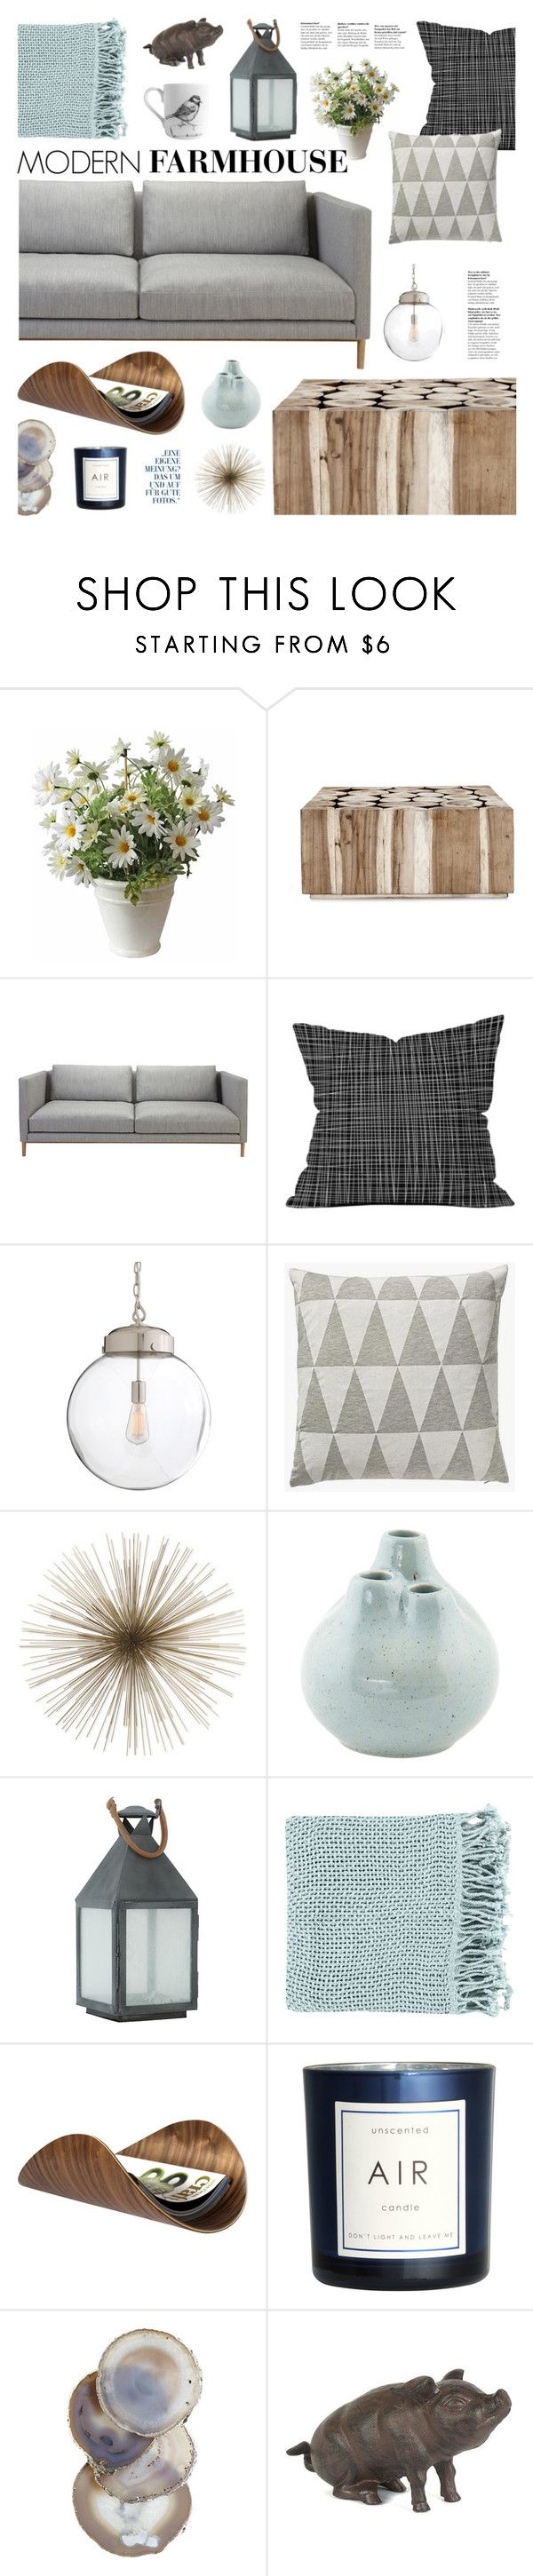 """Modern Farmhouse"" by emmy on Polyvore"